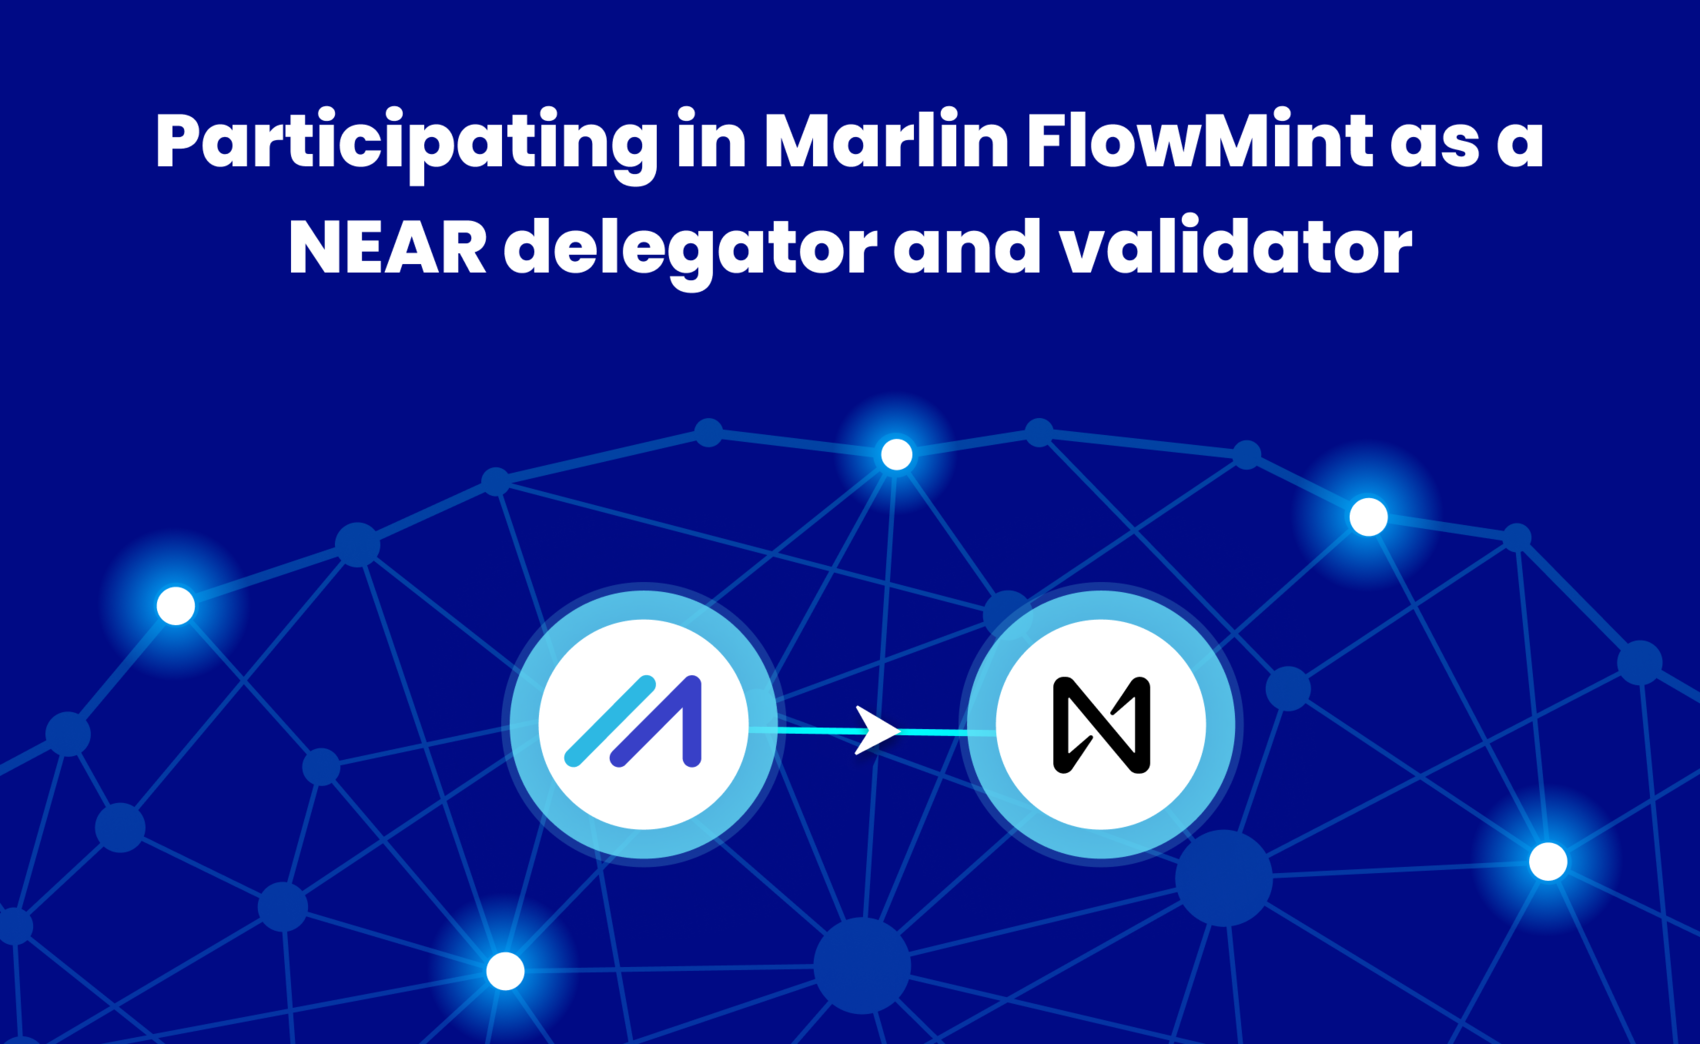 Participating in Marlin FlowMint as a NEAR delegator and validator